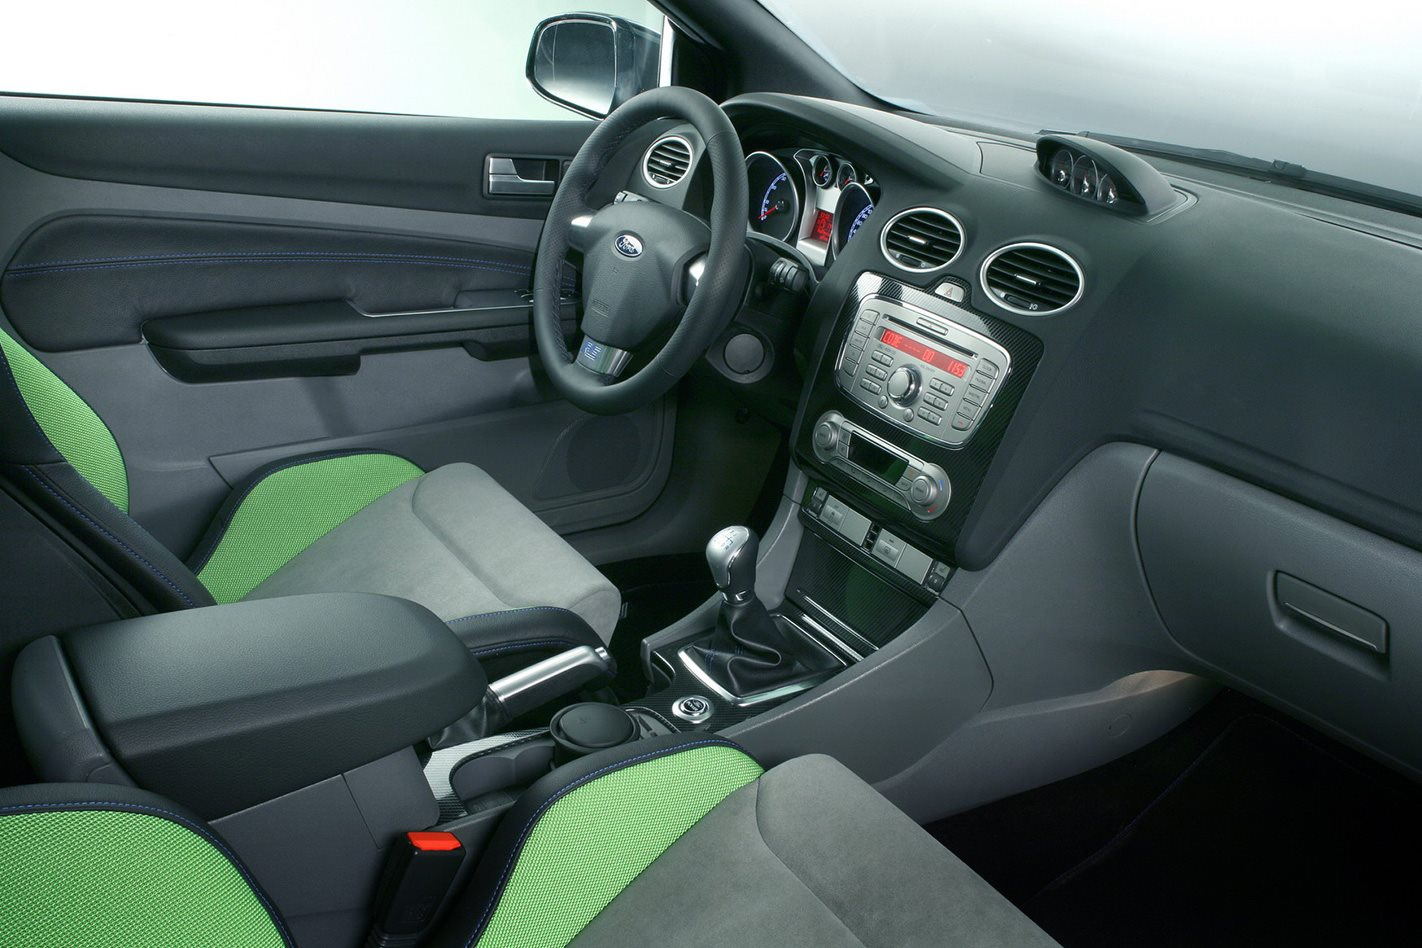 2008 Ford Focus RS interior